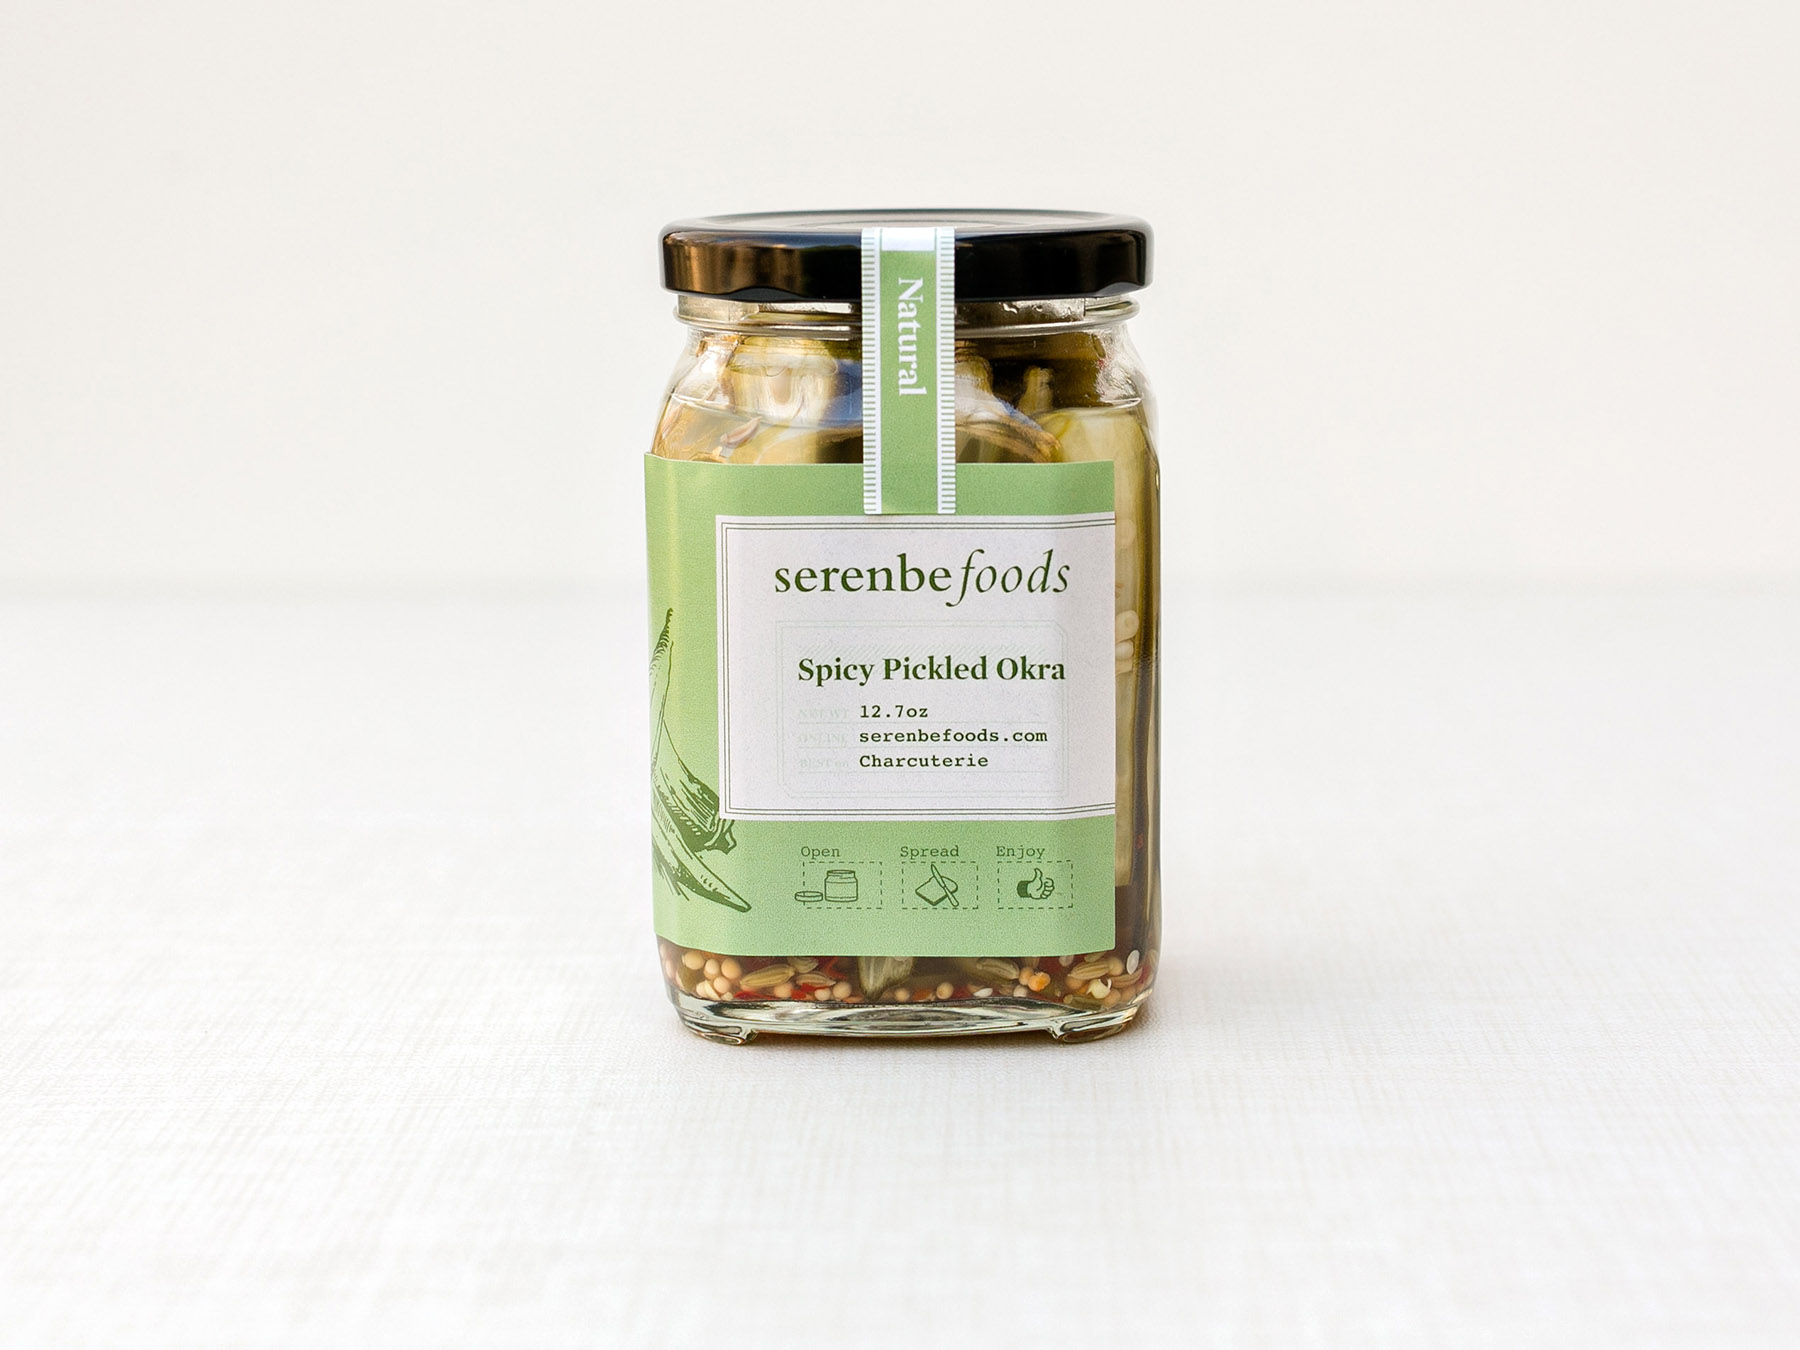 Serenbe Foods spicy pickled okra jar label design